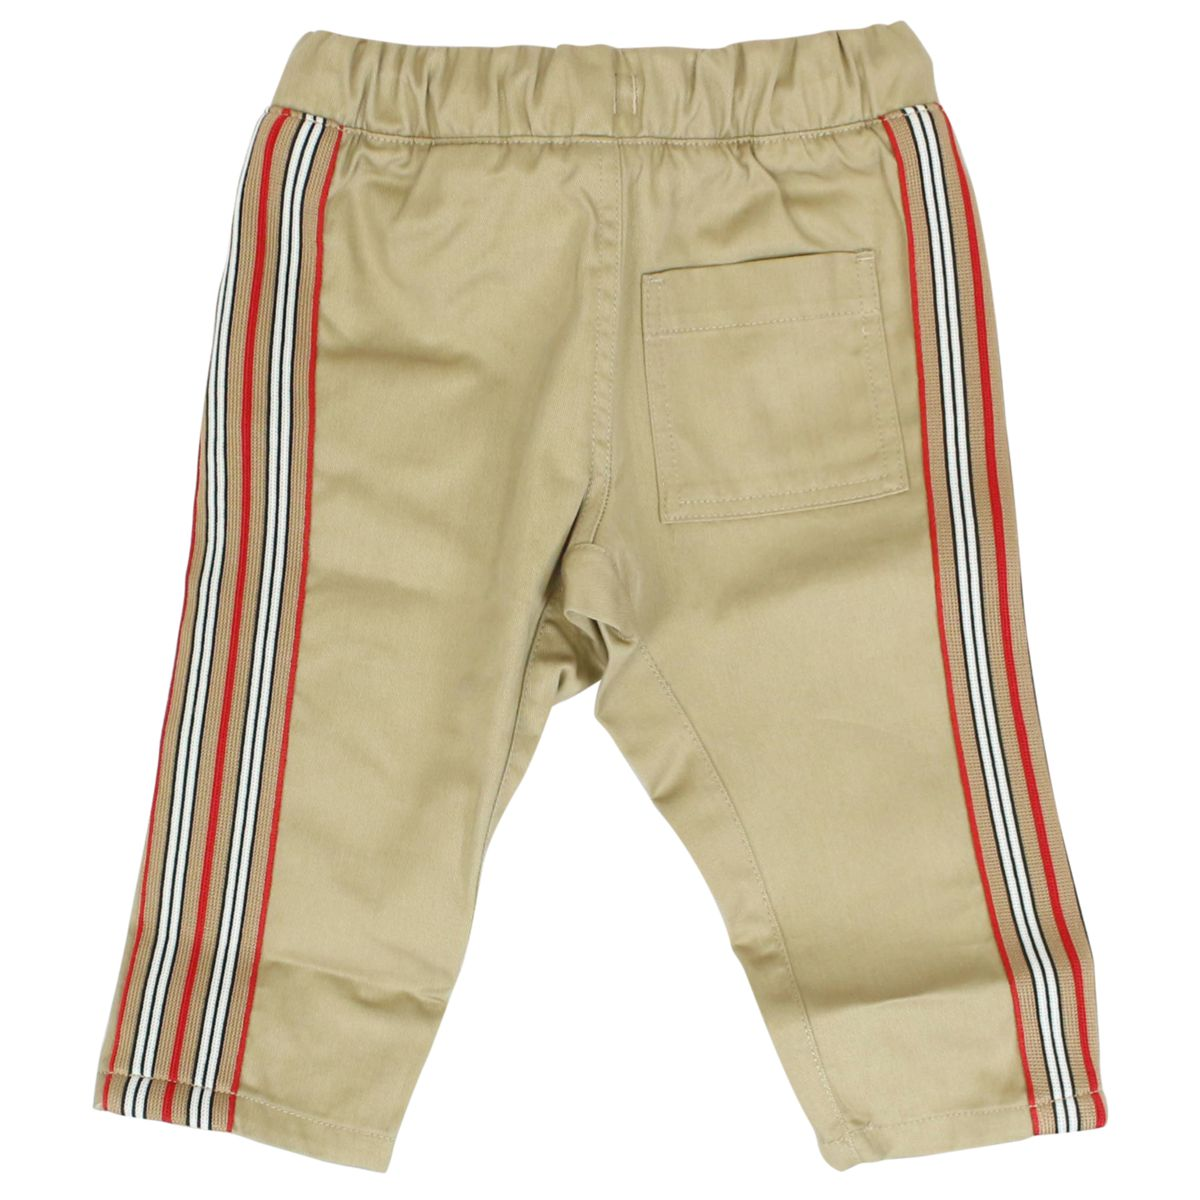 Jojjing trousers with check striped bands Honey Burberry